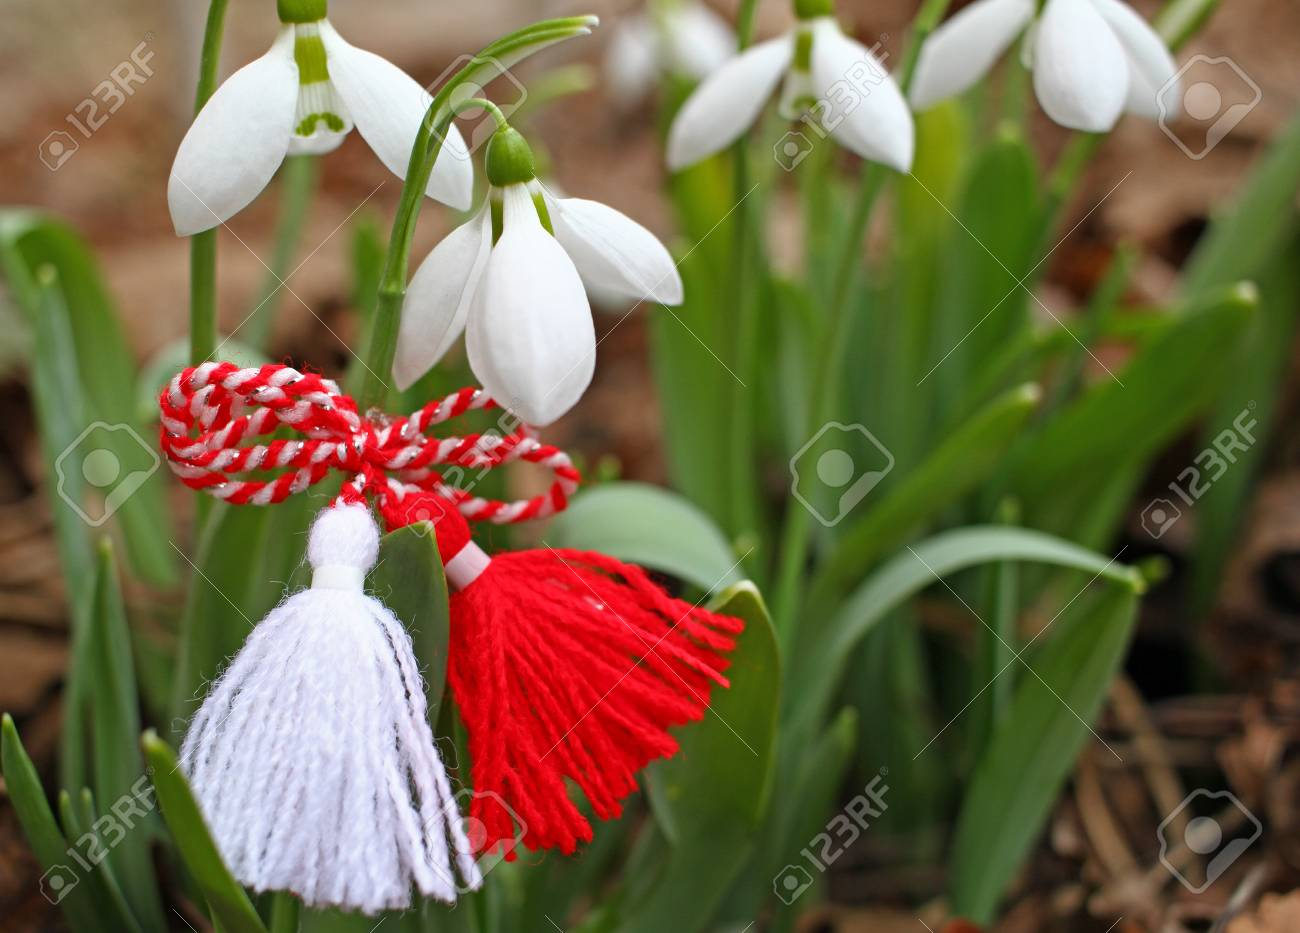 117811616 snowdrops and martenitsa symbols of spring white snowdrop flowers and martisor baba marta holiday tr